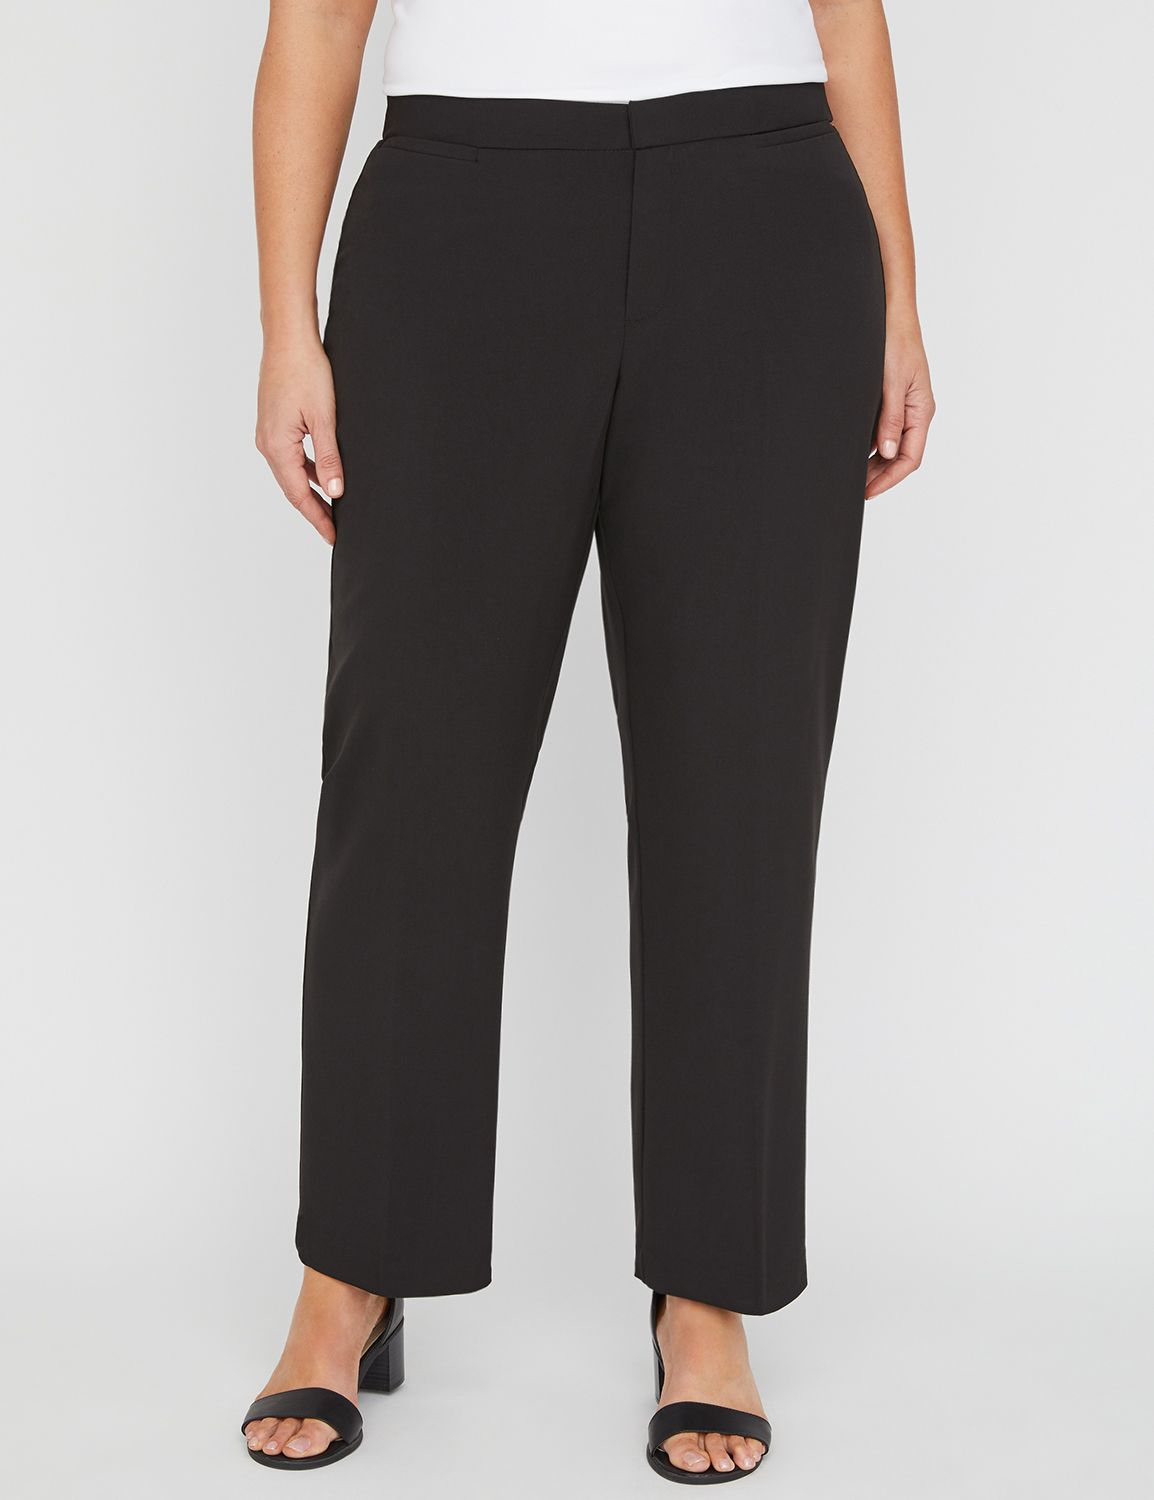 Right Fit Pant (Moderately Curvy) Right Fit Pant (Moderately Curvy) MP-300009899